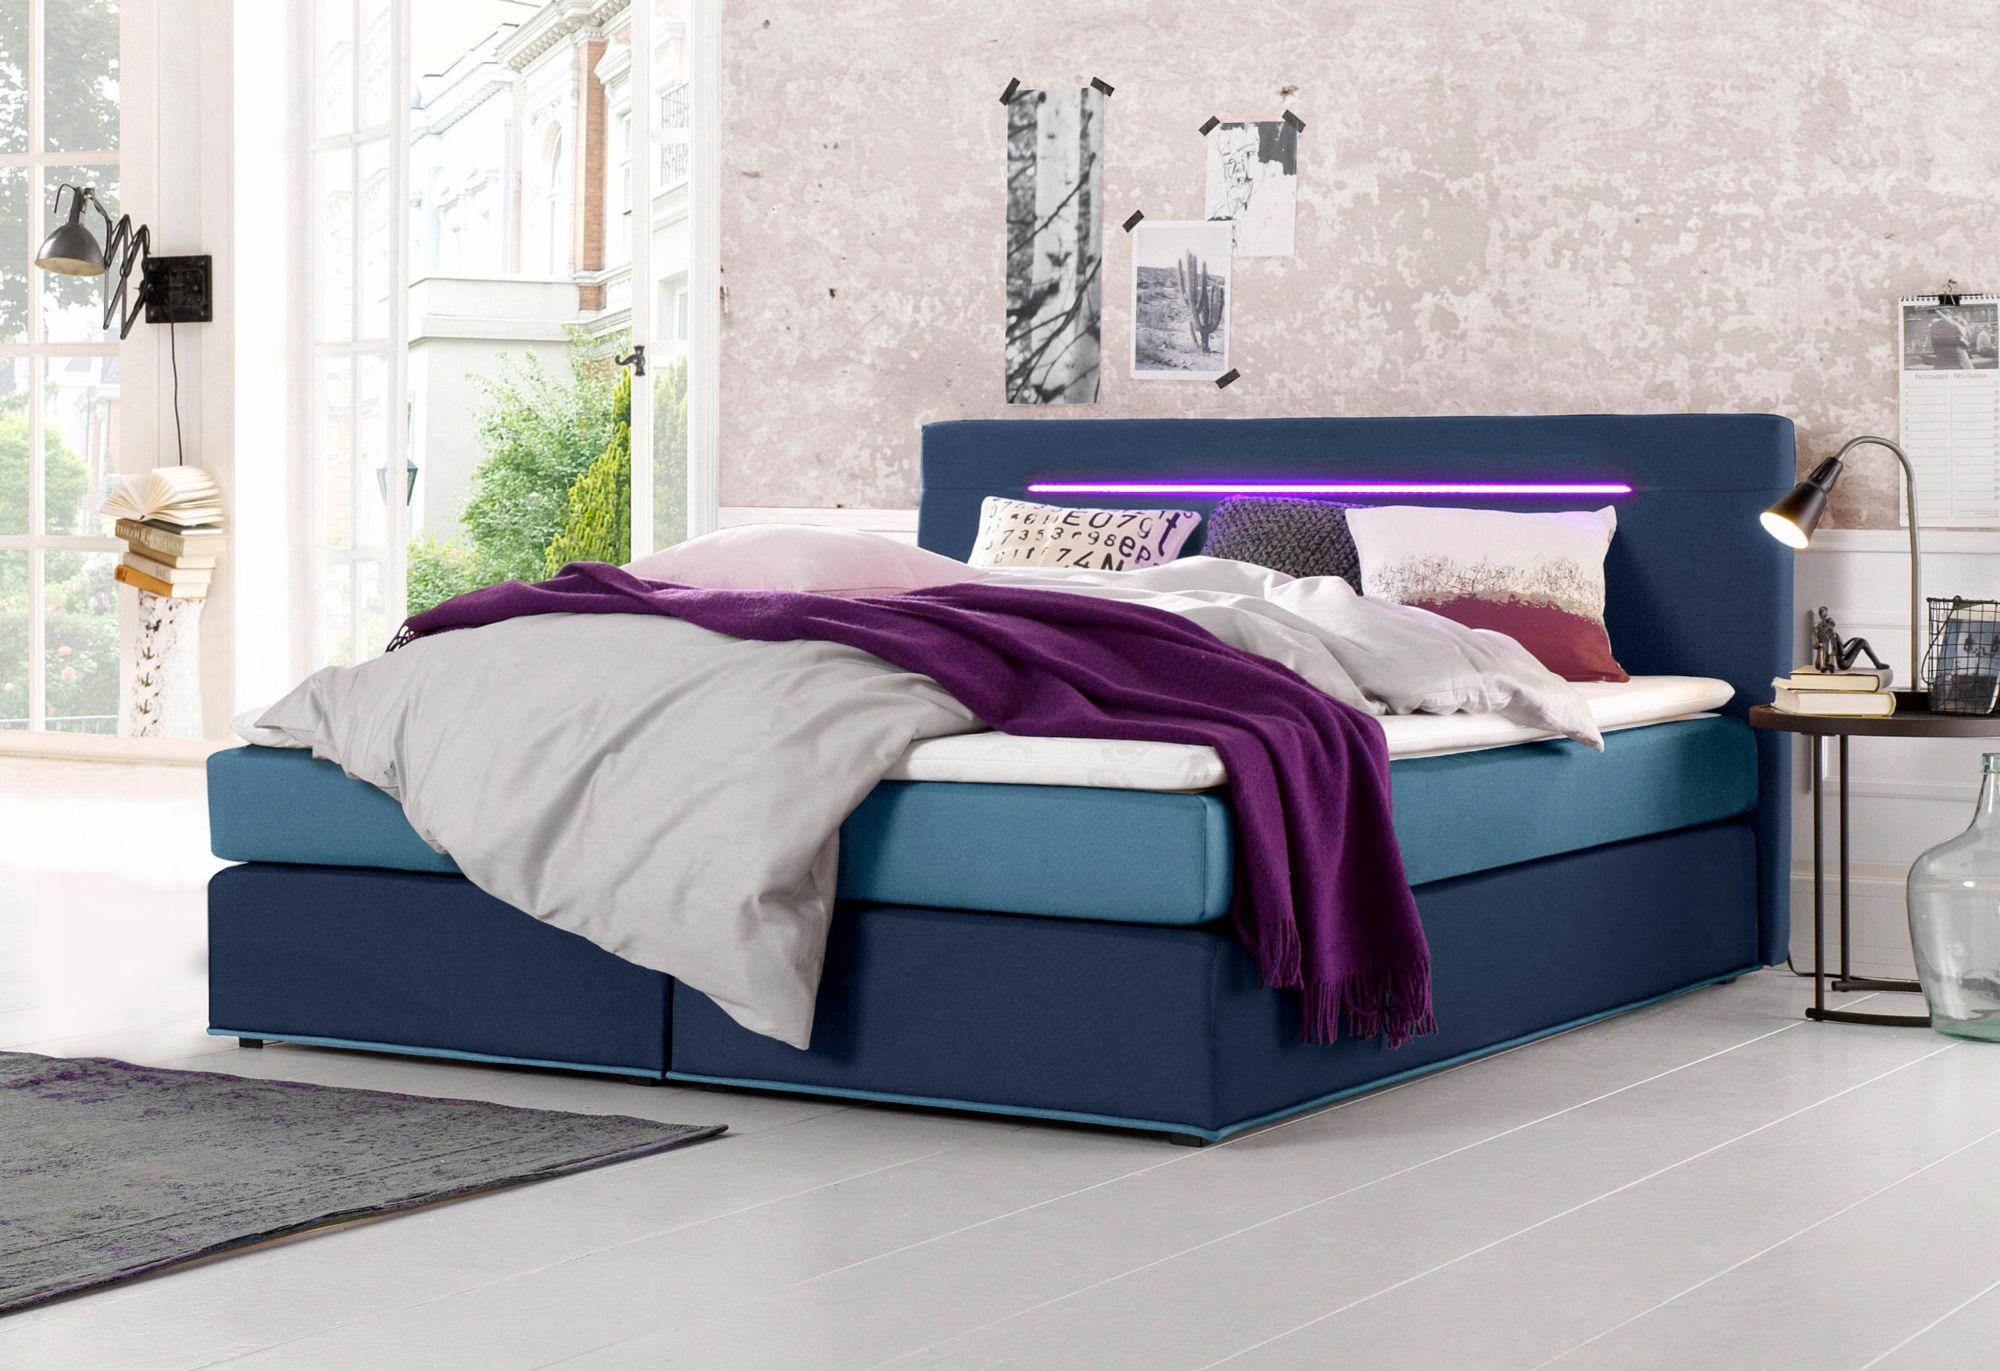 COLLECTION AB Collection AB Boxspringbett inkl. LED-Beleuchtung und Topper